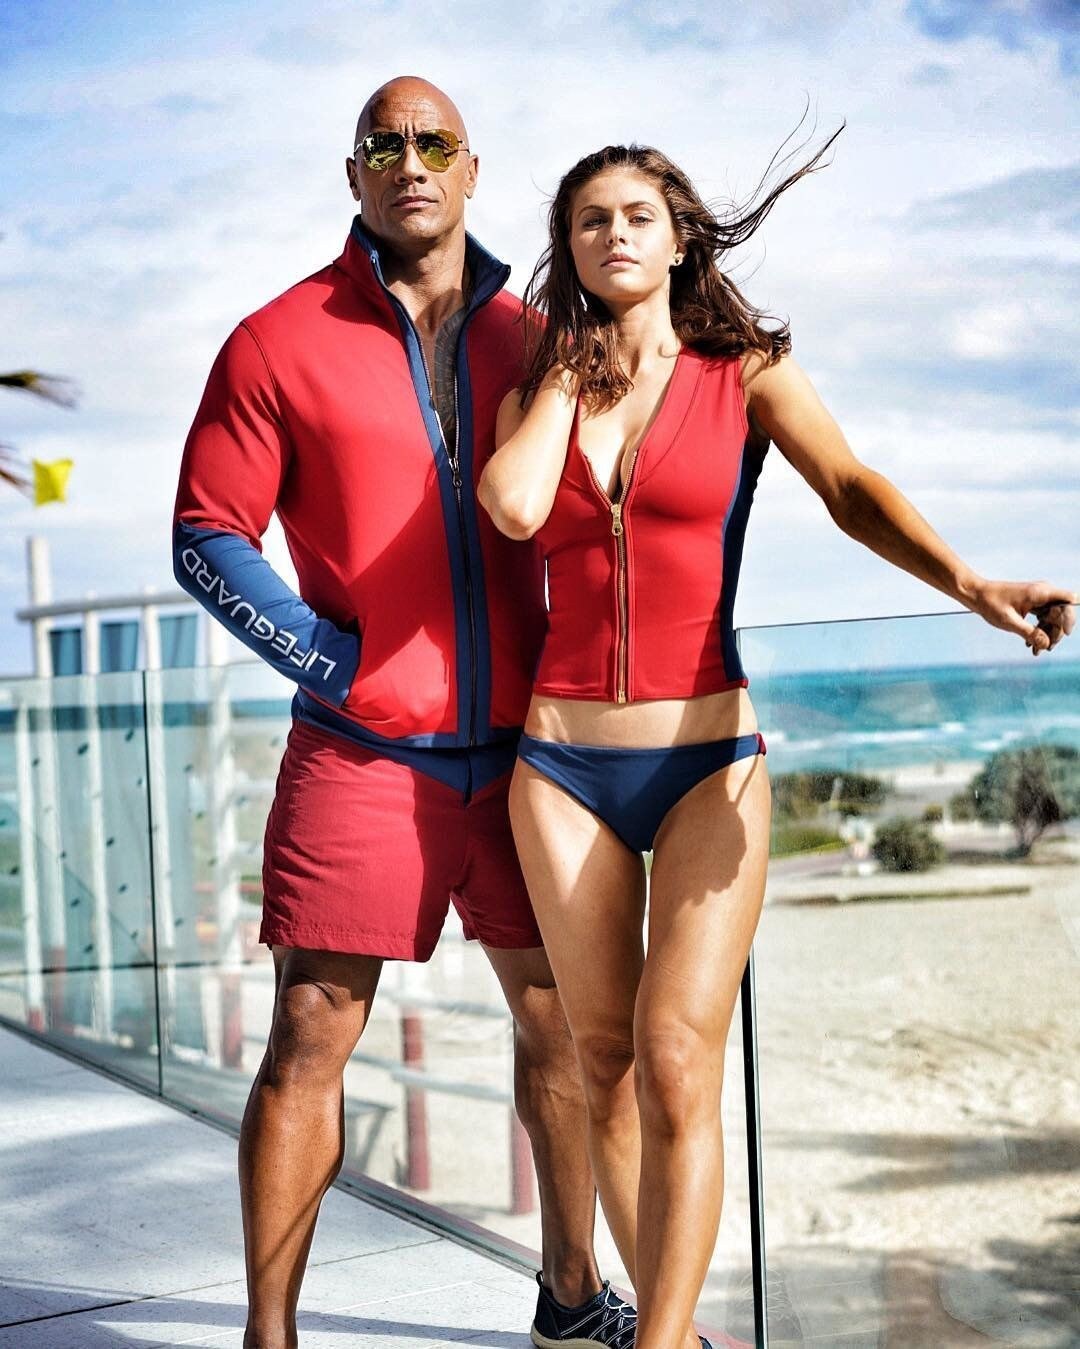 'Baywatch' Stars Alexandra Daddario And Jon Bass Are Proud The Movie 'Flips The